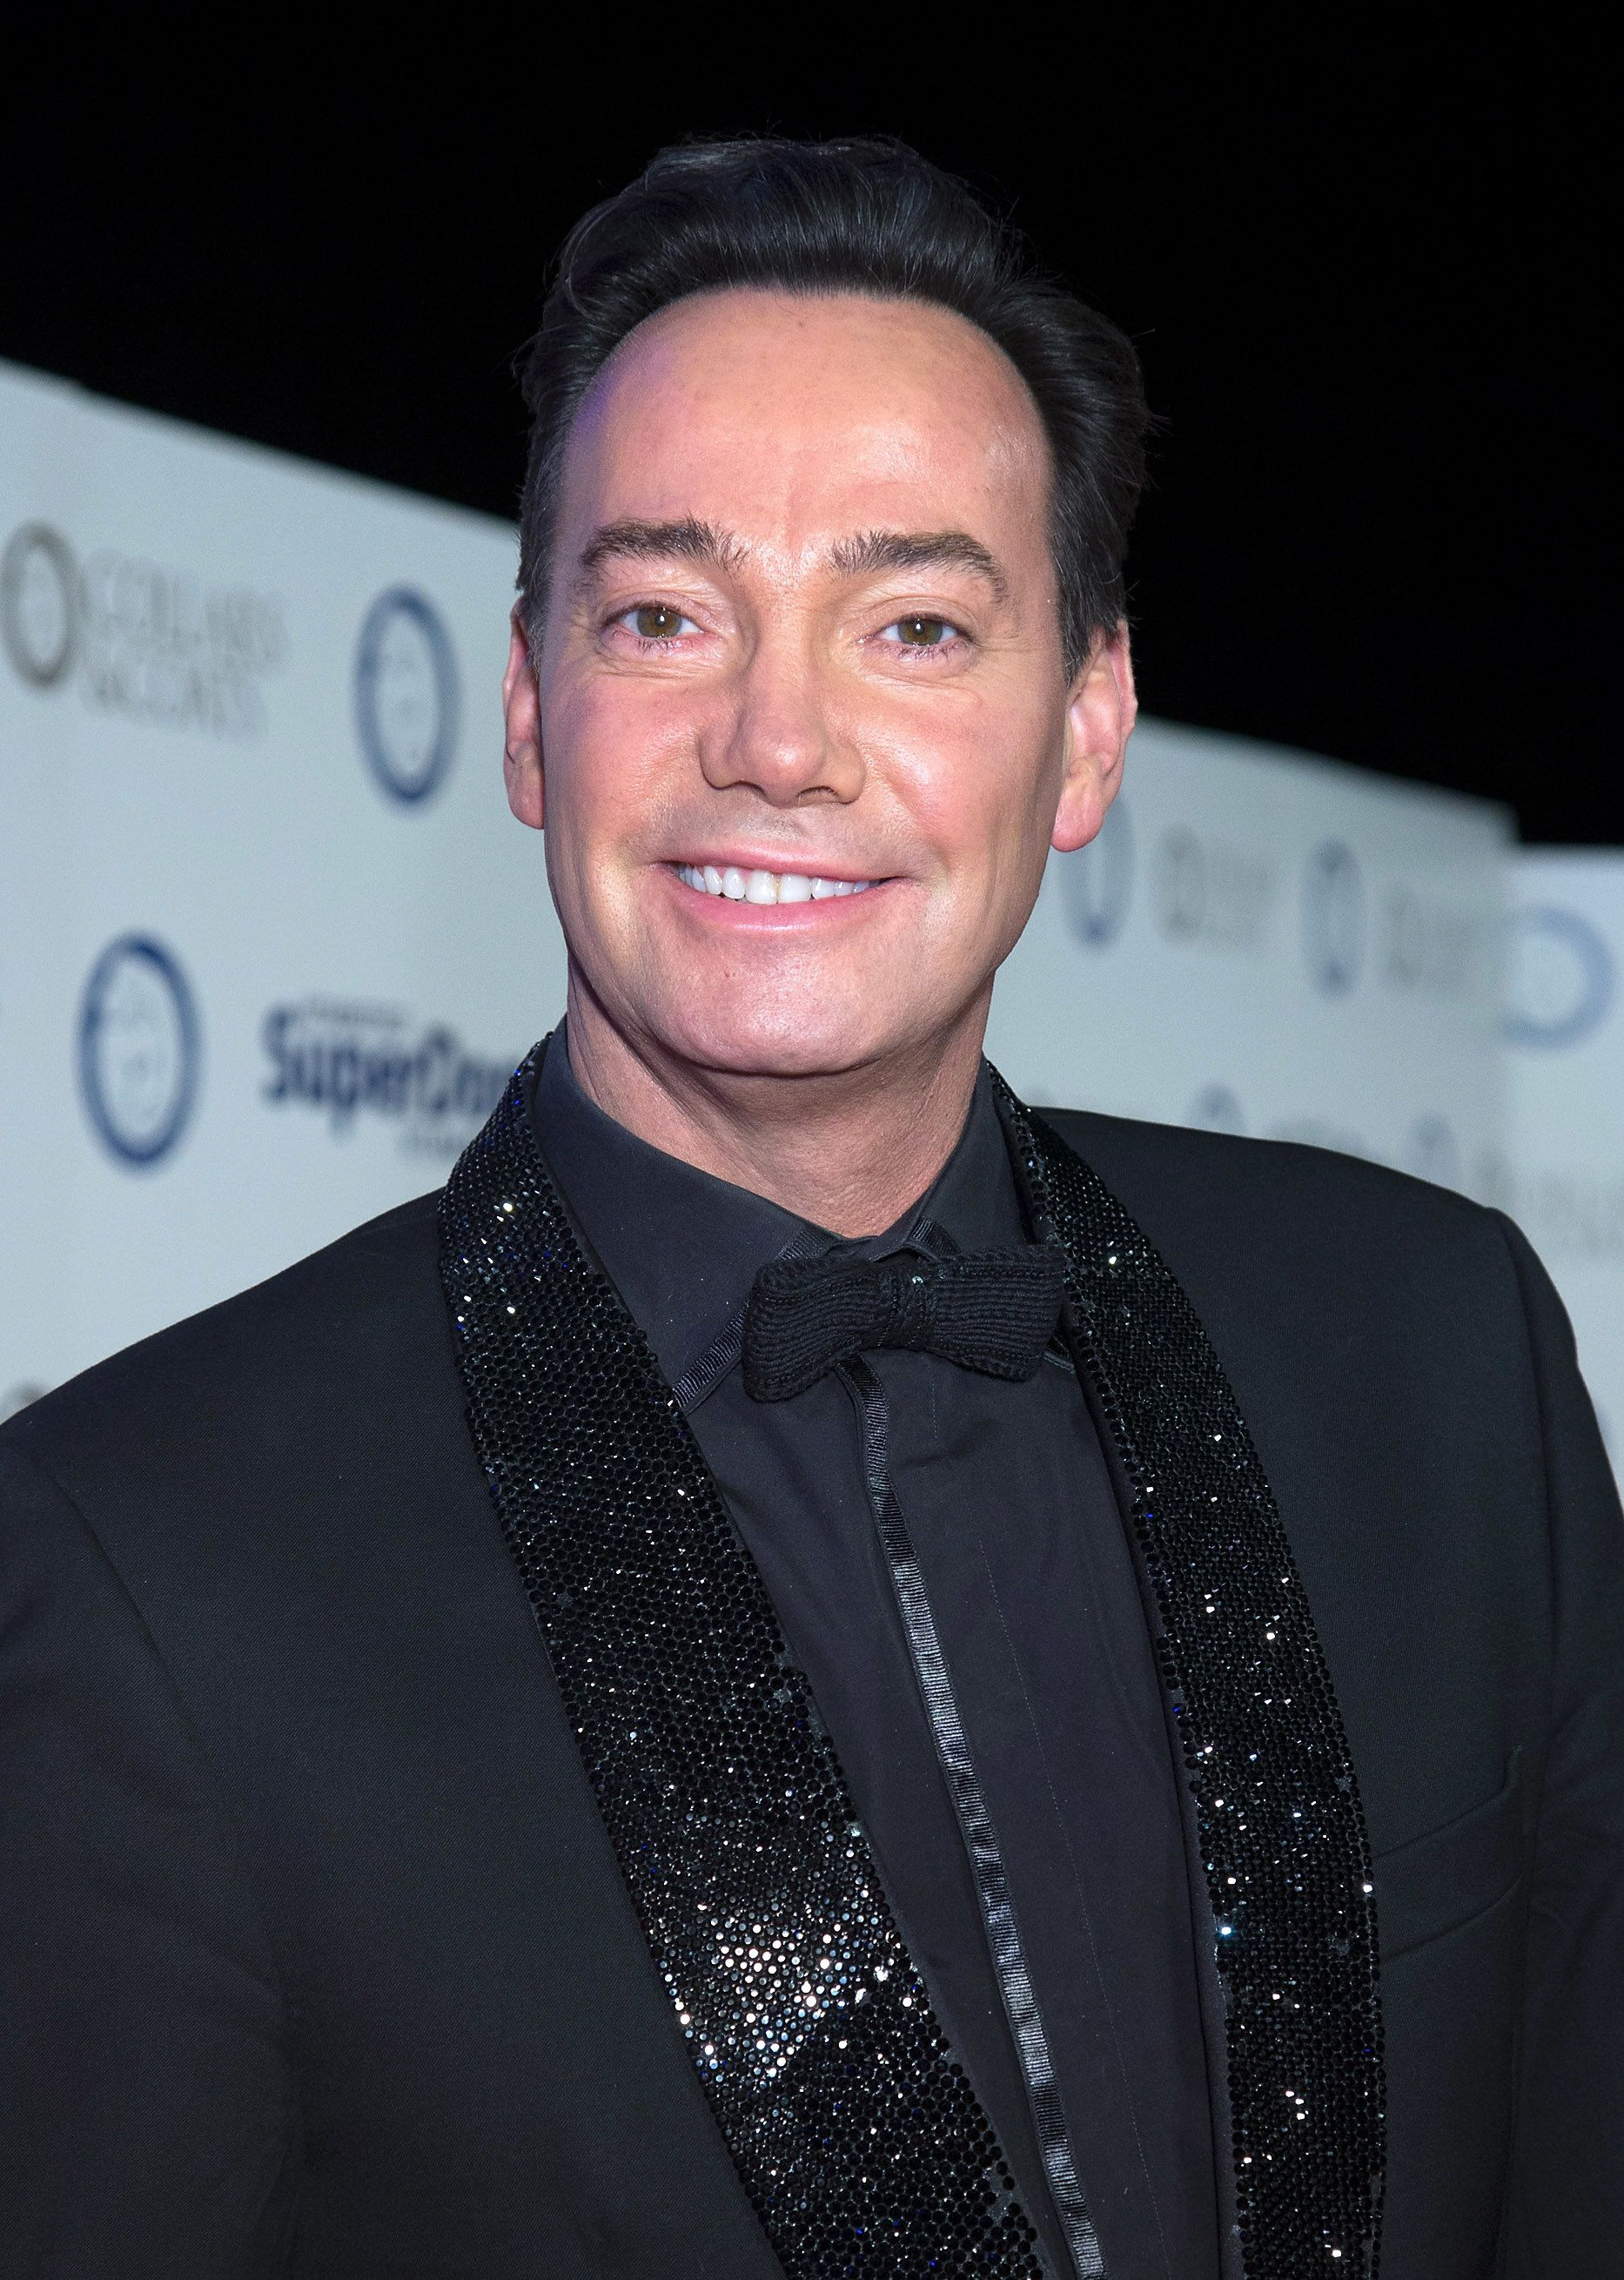 'Strictly' Judge Craig Revel Horwood Proposes A Solution To End 'Fix' Accusations